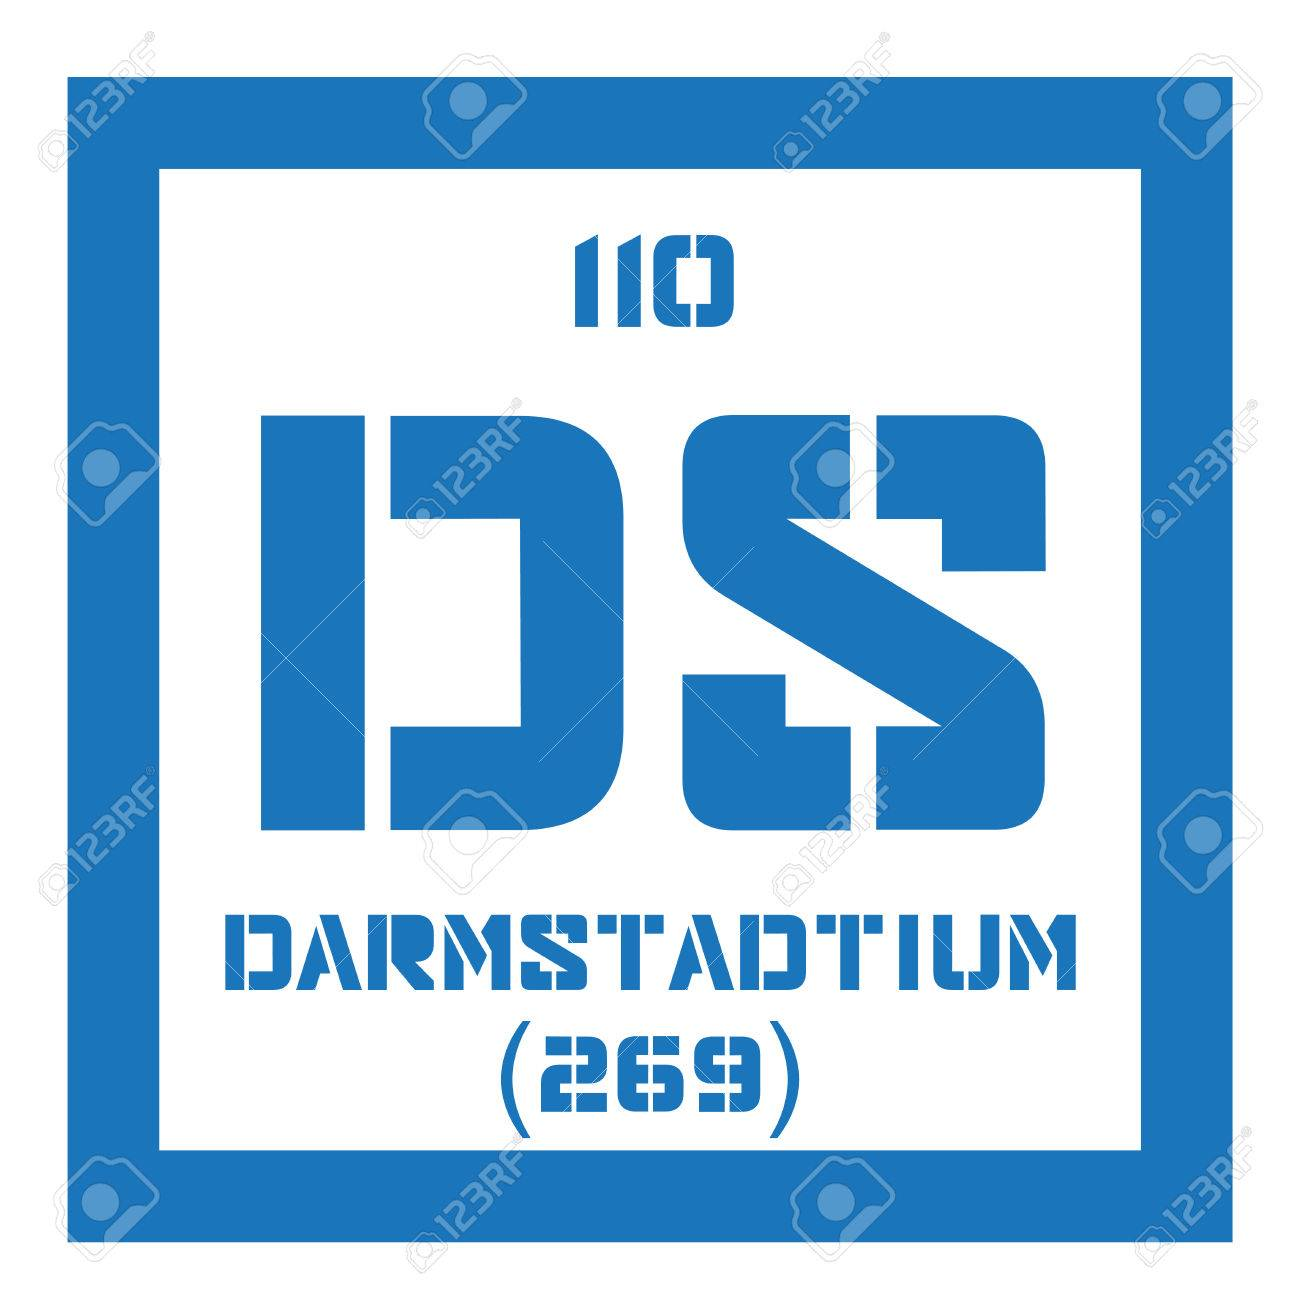 Darmstadtium chemical element extremely radioactive synthetic chemical element of periodic table darmstadtium chemical element extremely radioactive synthetic element colored icon with atomic number and atomic urtaz Gallery